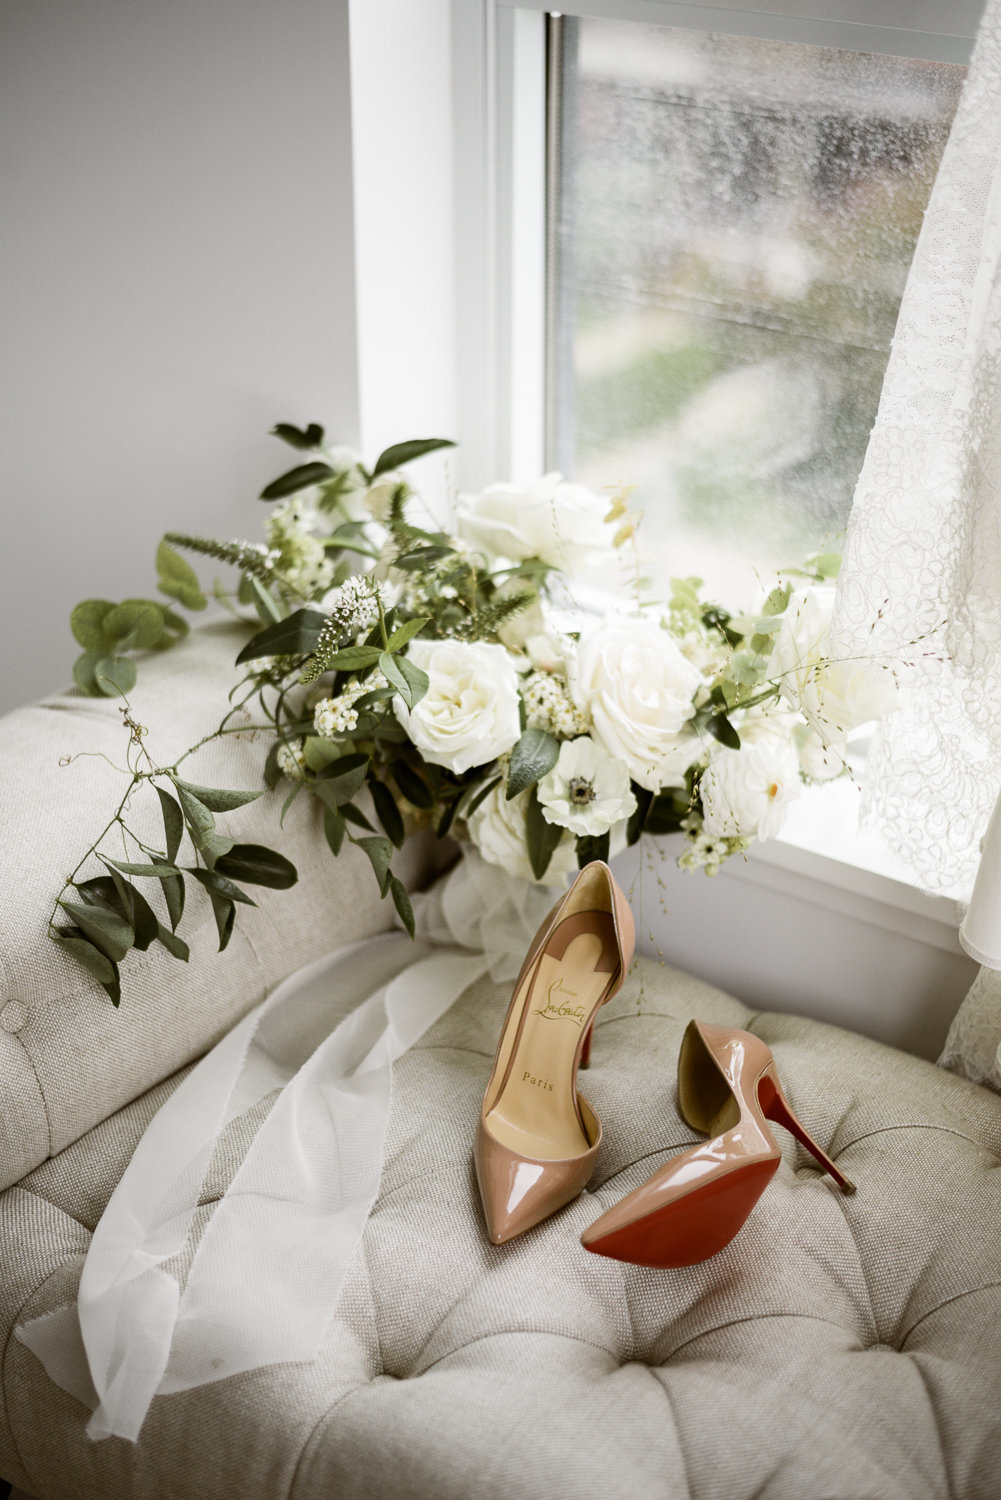 Louboutins and flowers